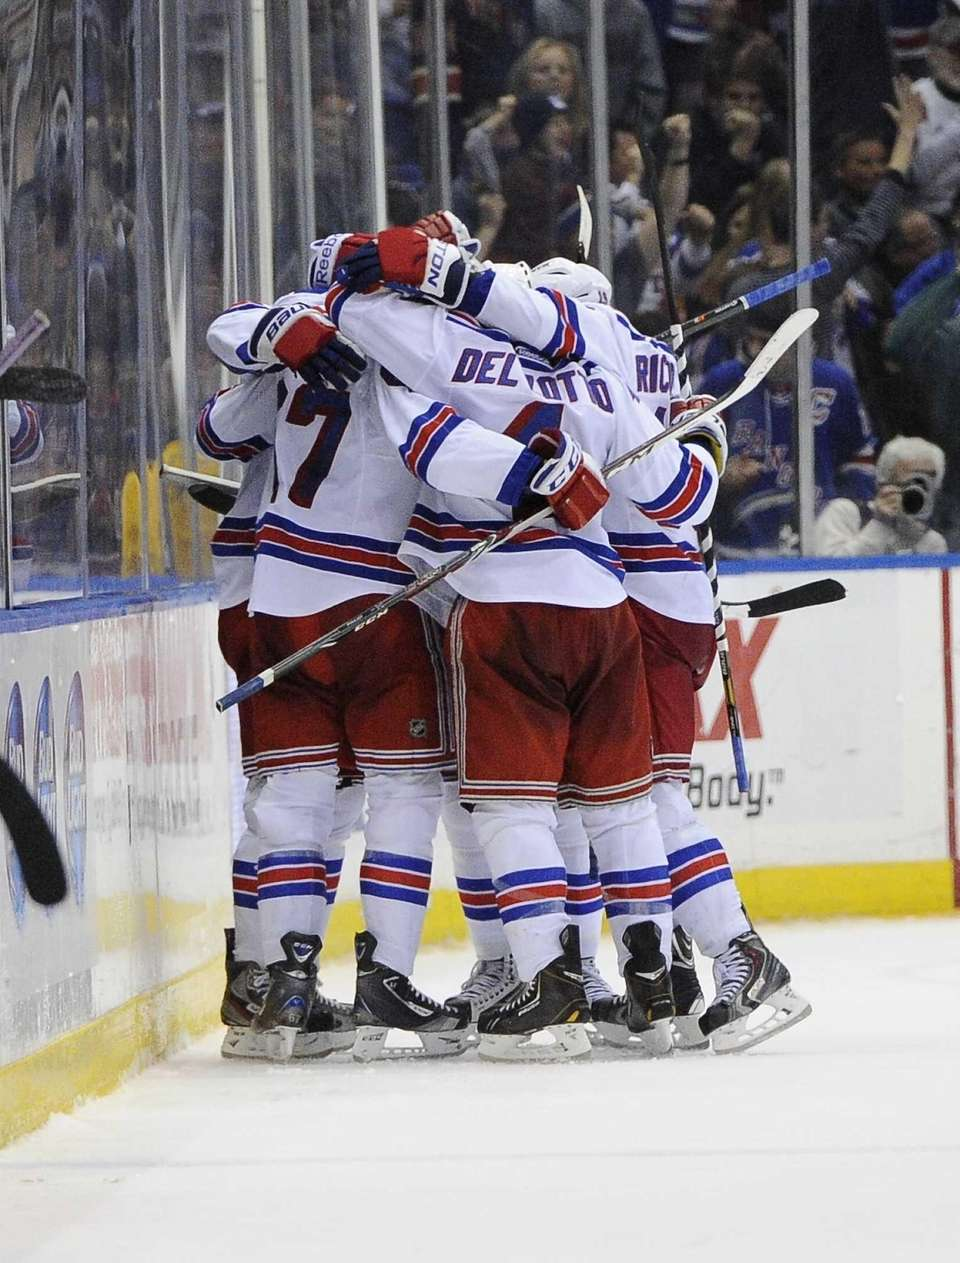 The Rangers celebrate the game-winning goal by Benoit